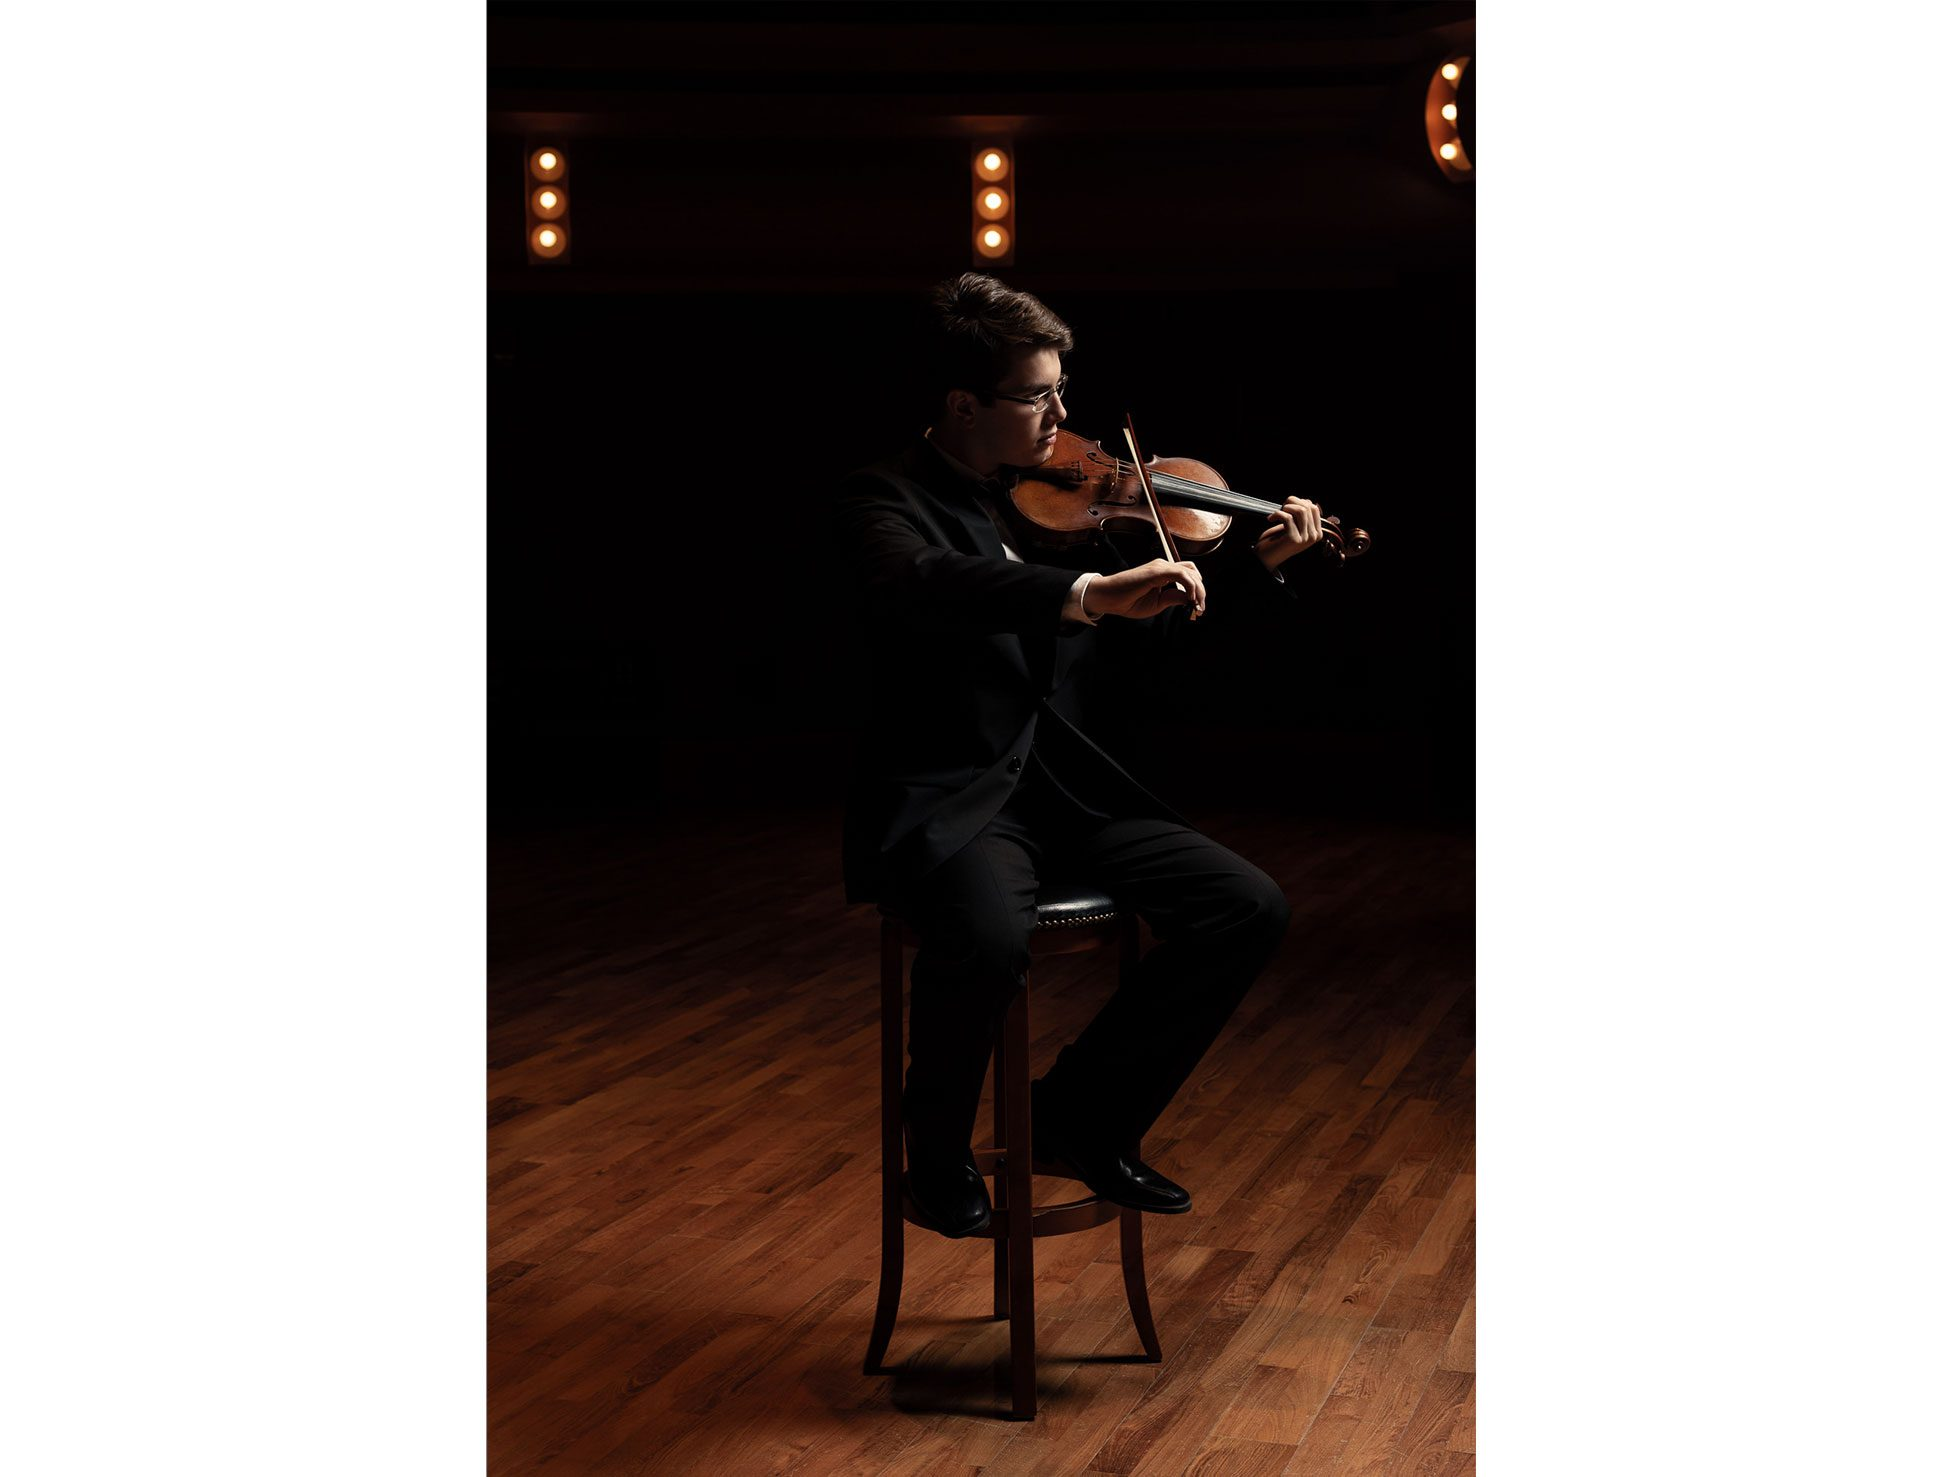 Portrait of a senior high school violinist playing his violin on the stage of the Leighton Concert Hall in the Darbartolo Performing Arts Center at Notre Dame University in South Bend, Indiana.